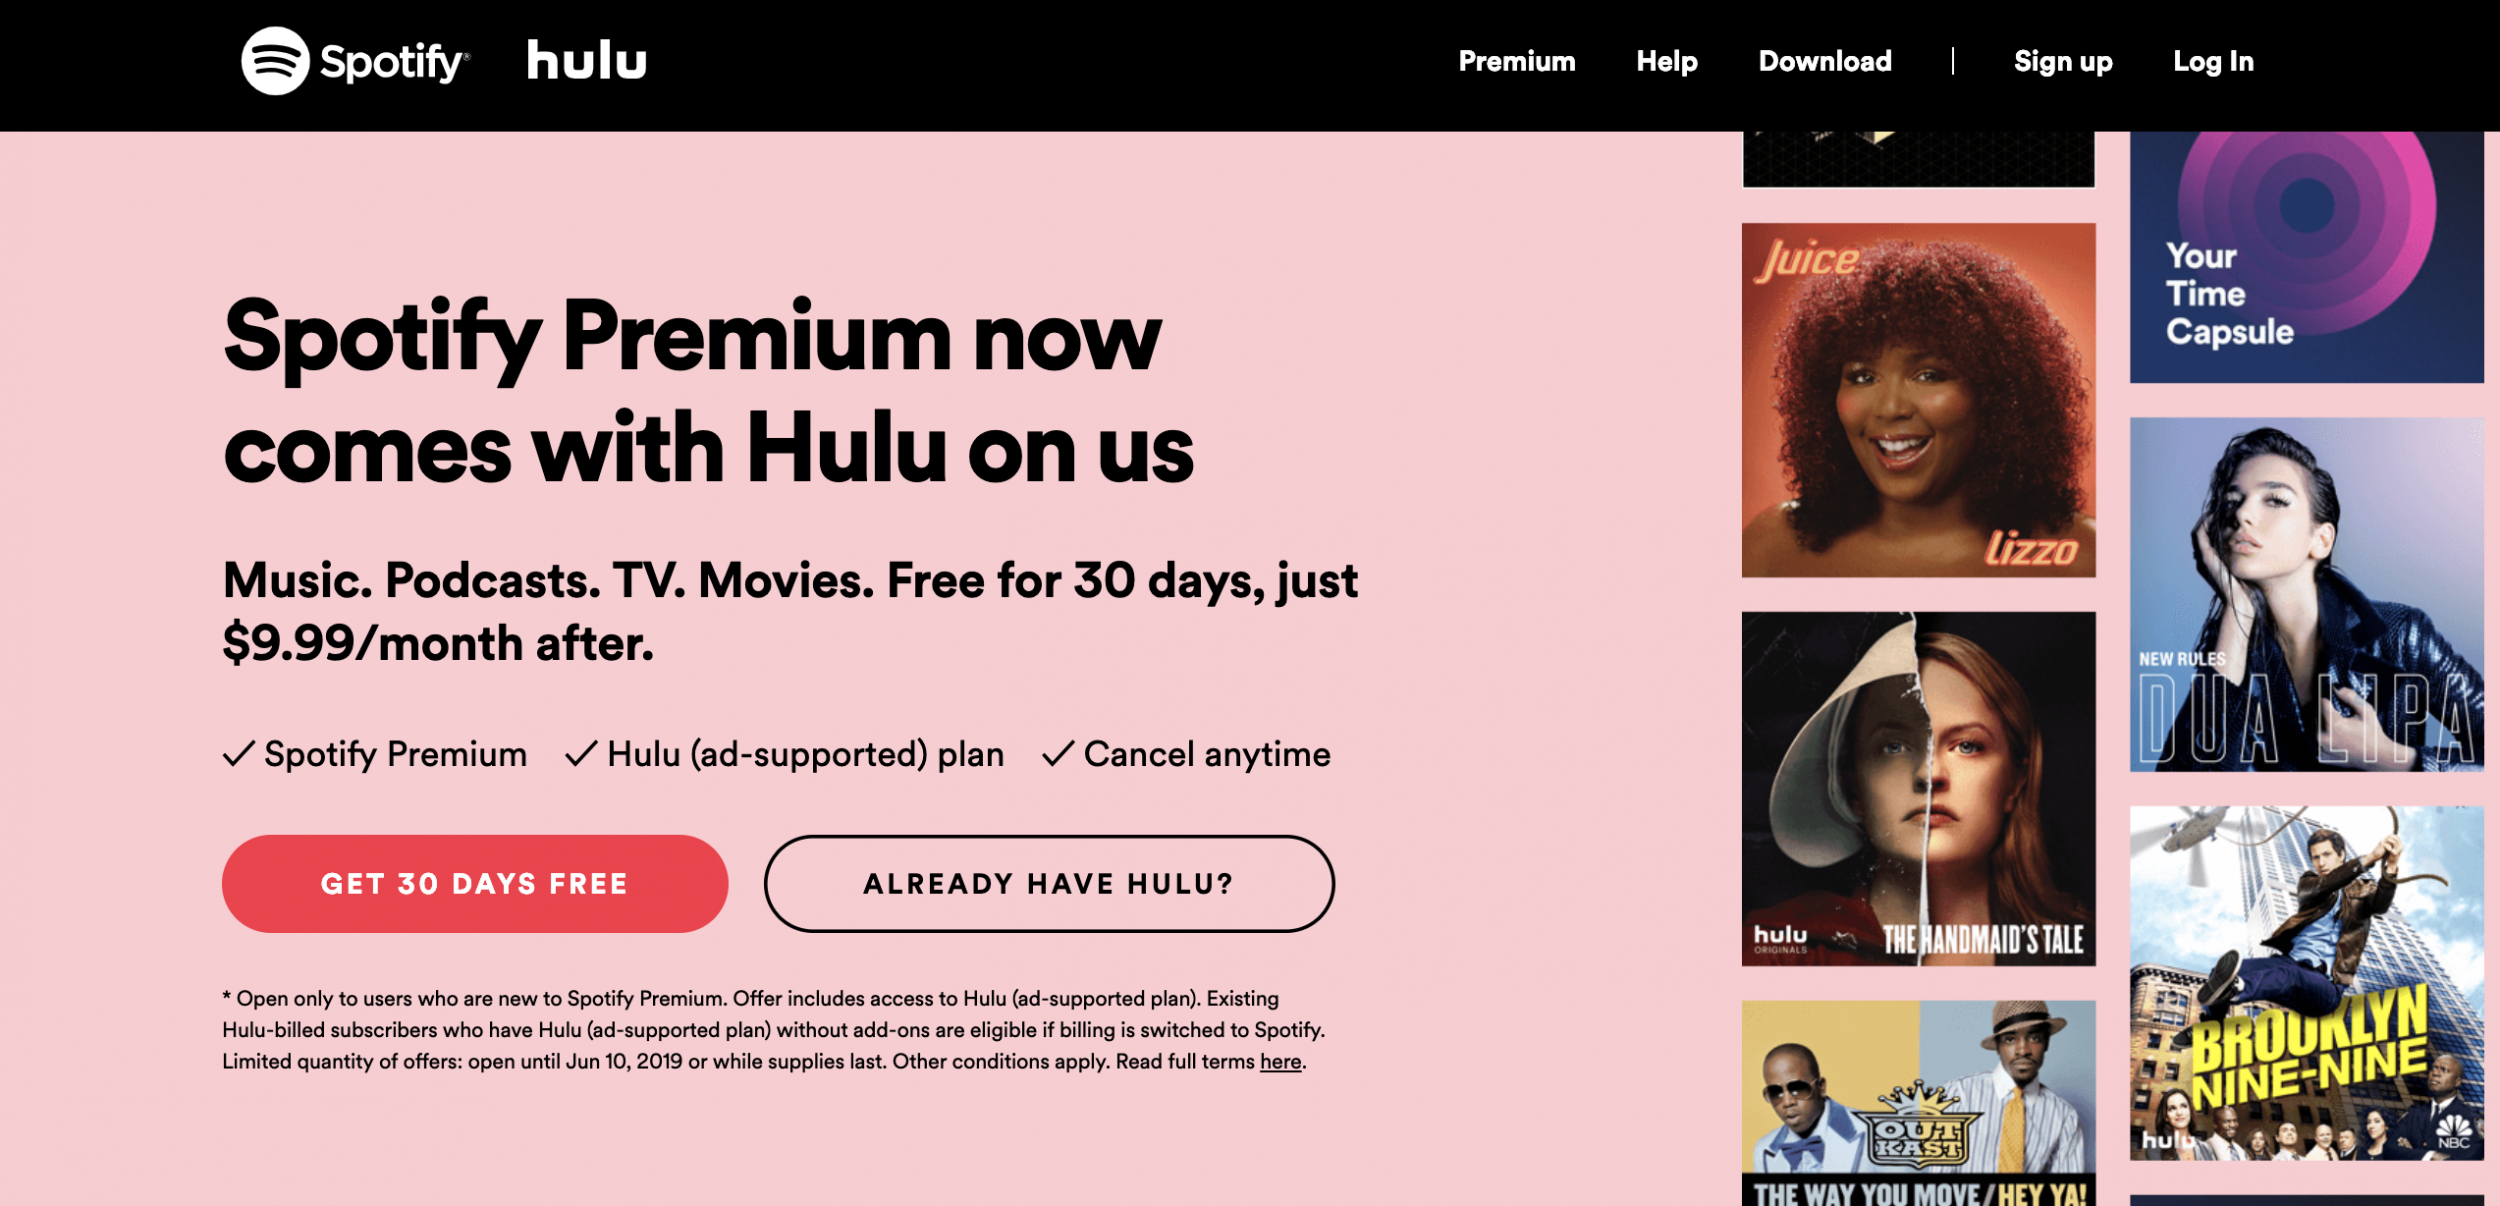 hulu spotify bundle how to sign up for free hulu with premium spotify plan. Black Bedroom Furniture Sets. Home Design Ideas